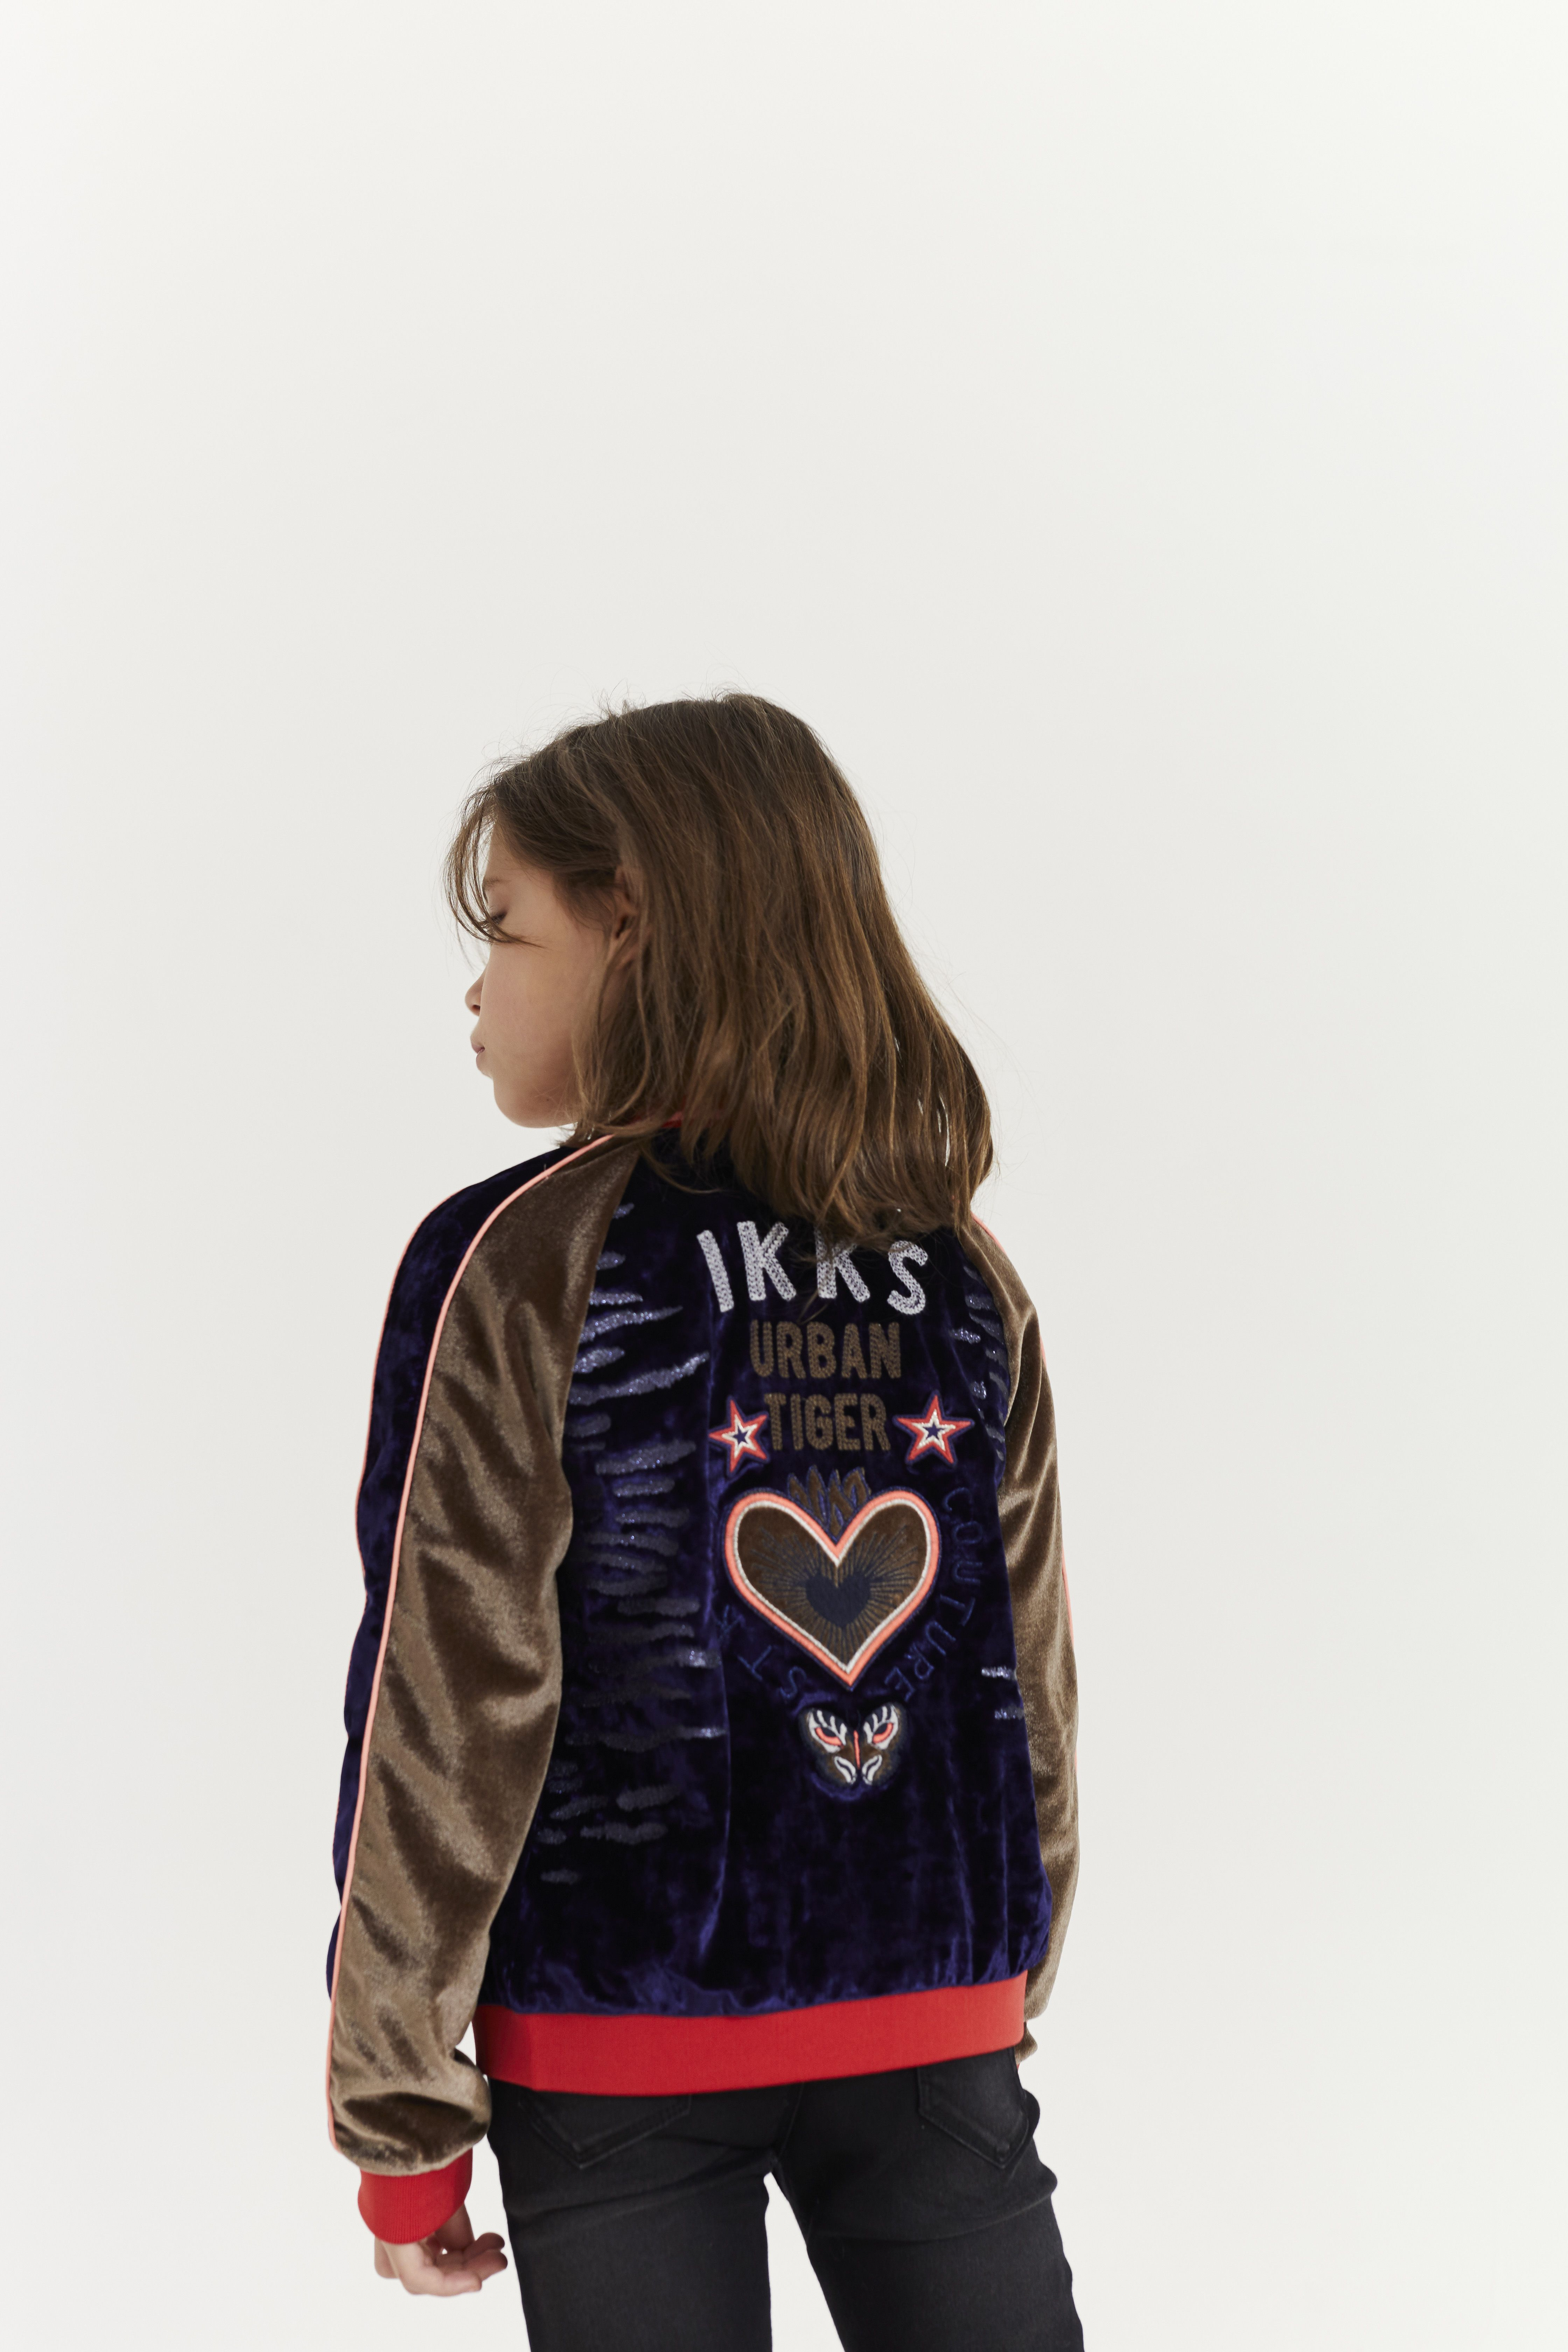 Look fille Automne-Hiver 2017 2018 collection IKKS Kid Girl  aw17  kidstyle cc33efadeb2